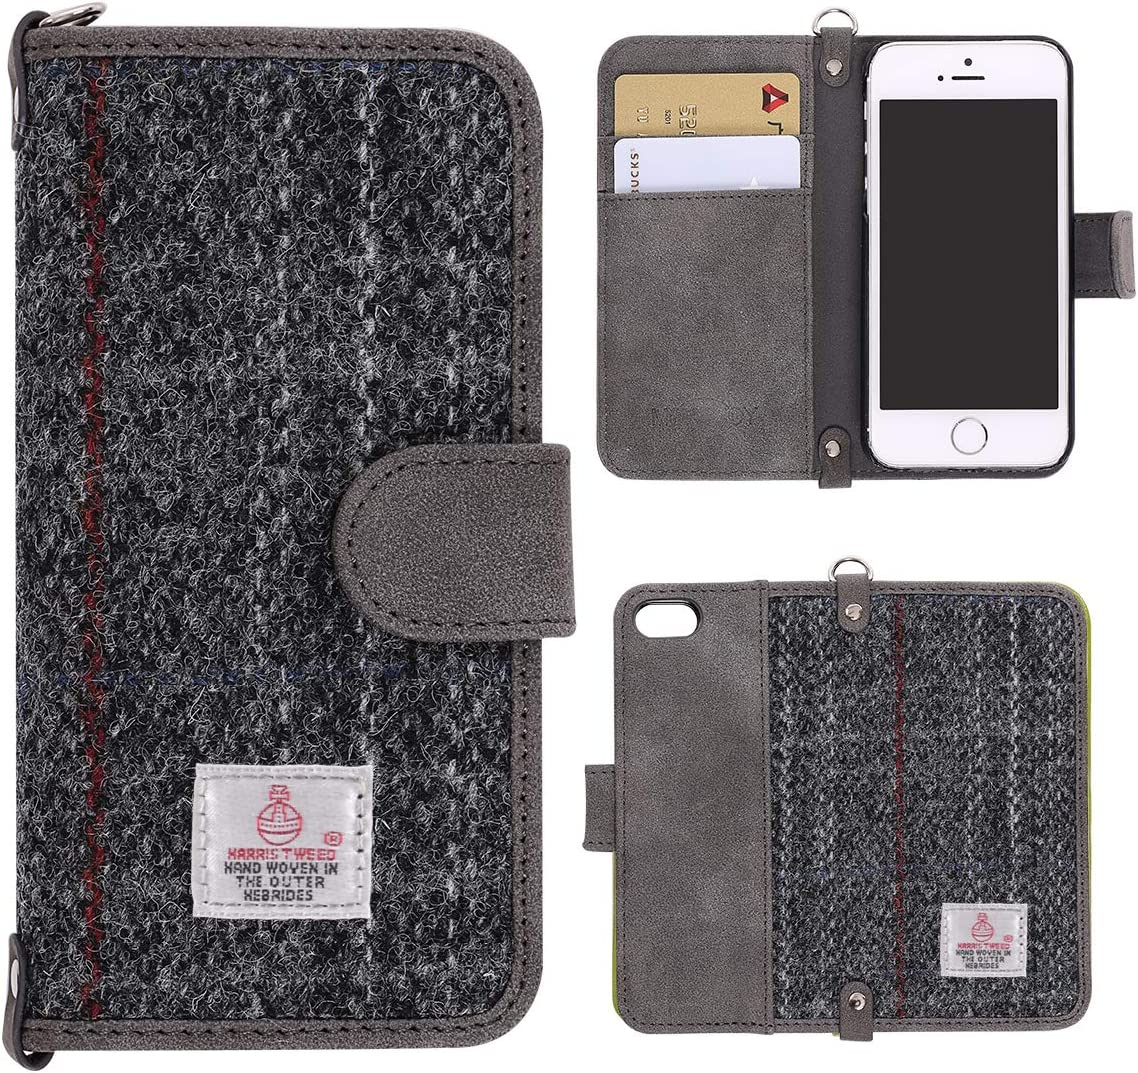 iPhone 6/7/8 Plus Fabric And Leather Back Cover (Light Grey